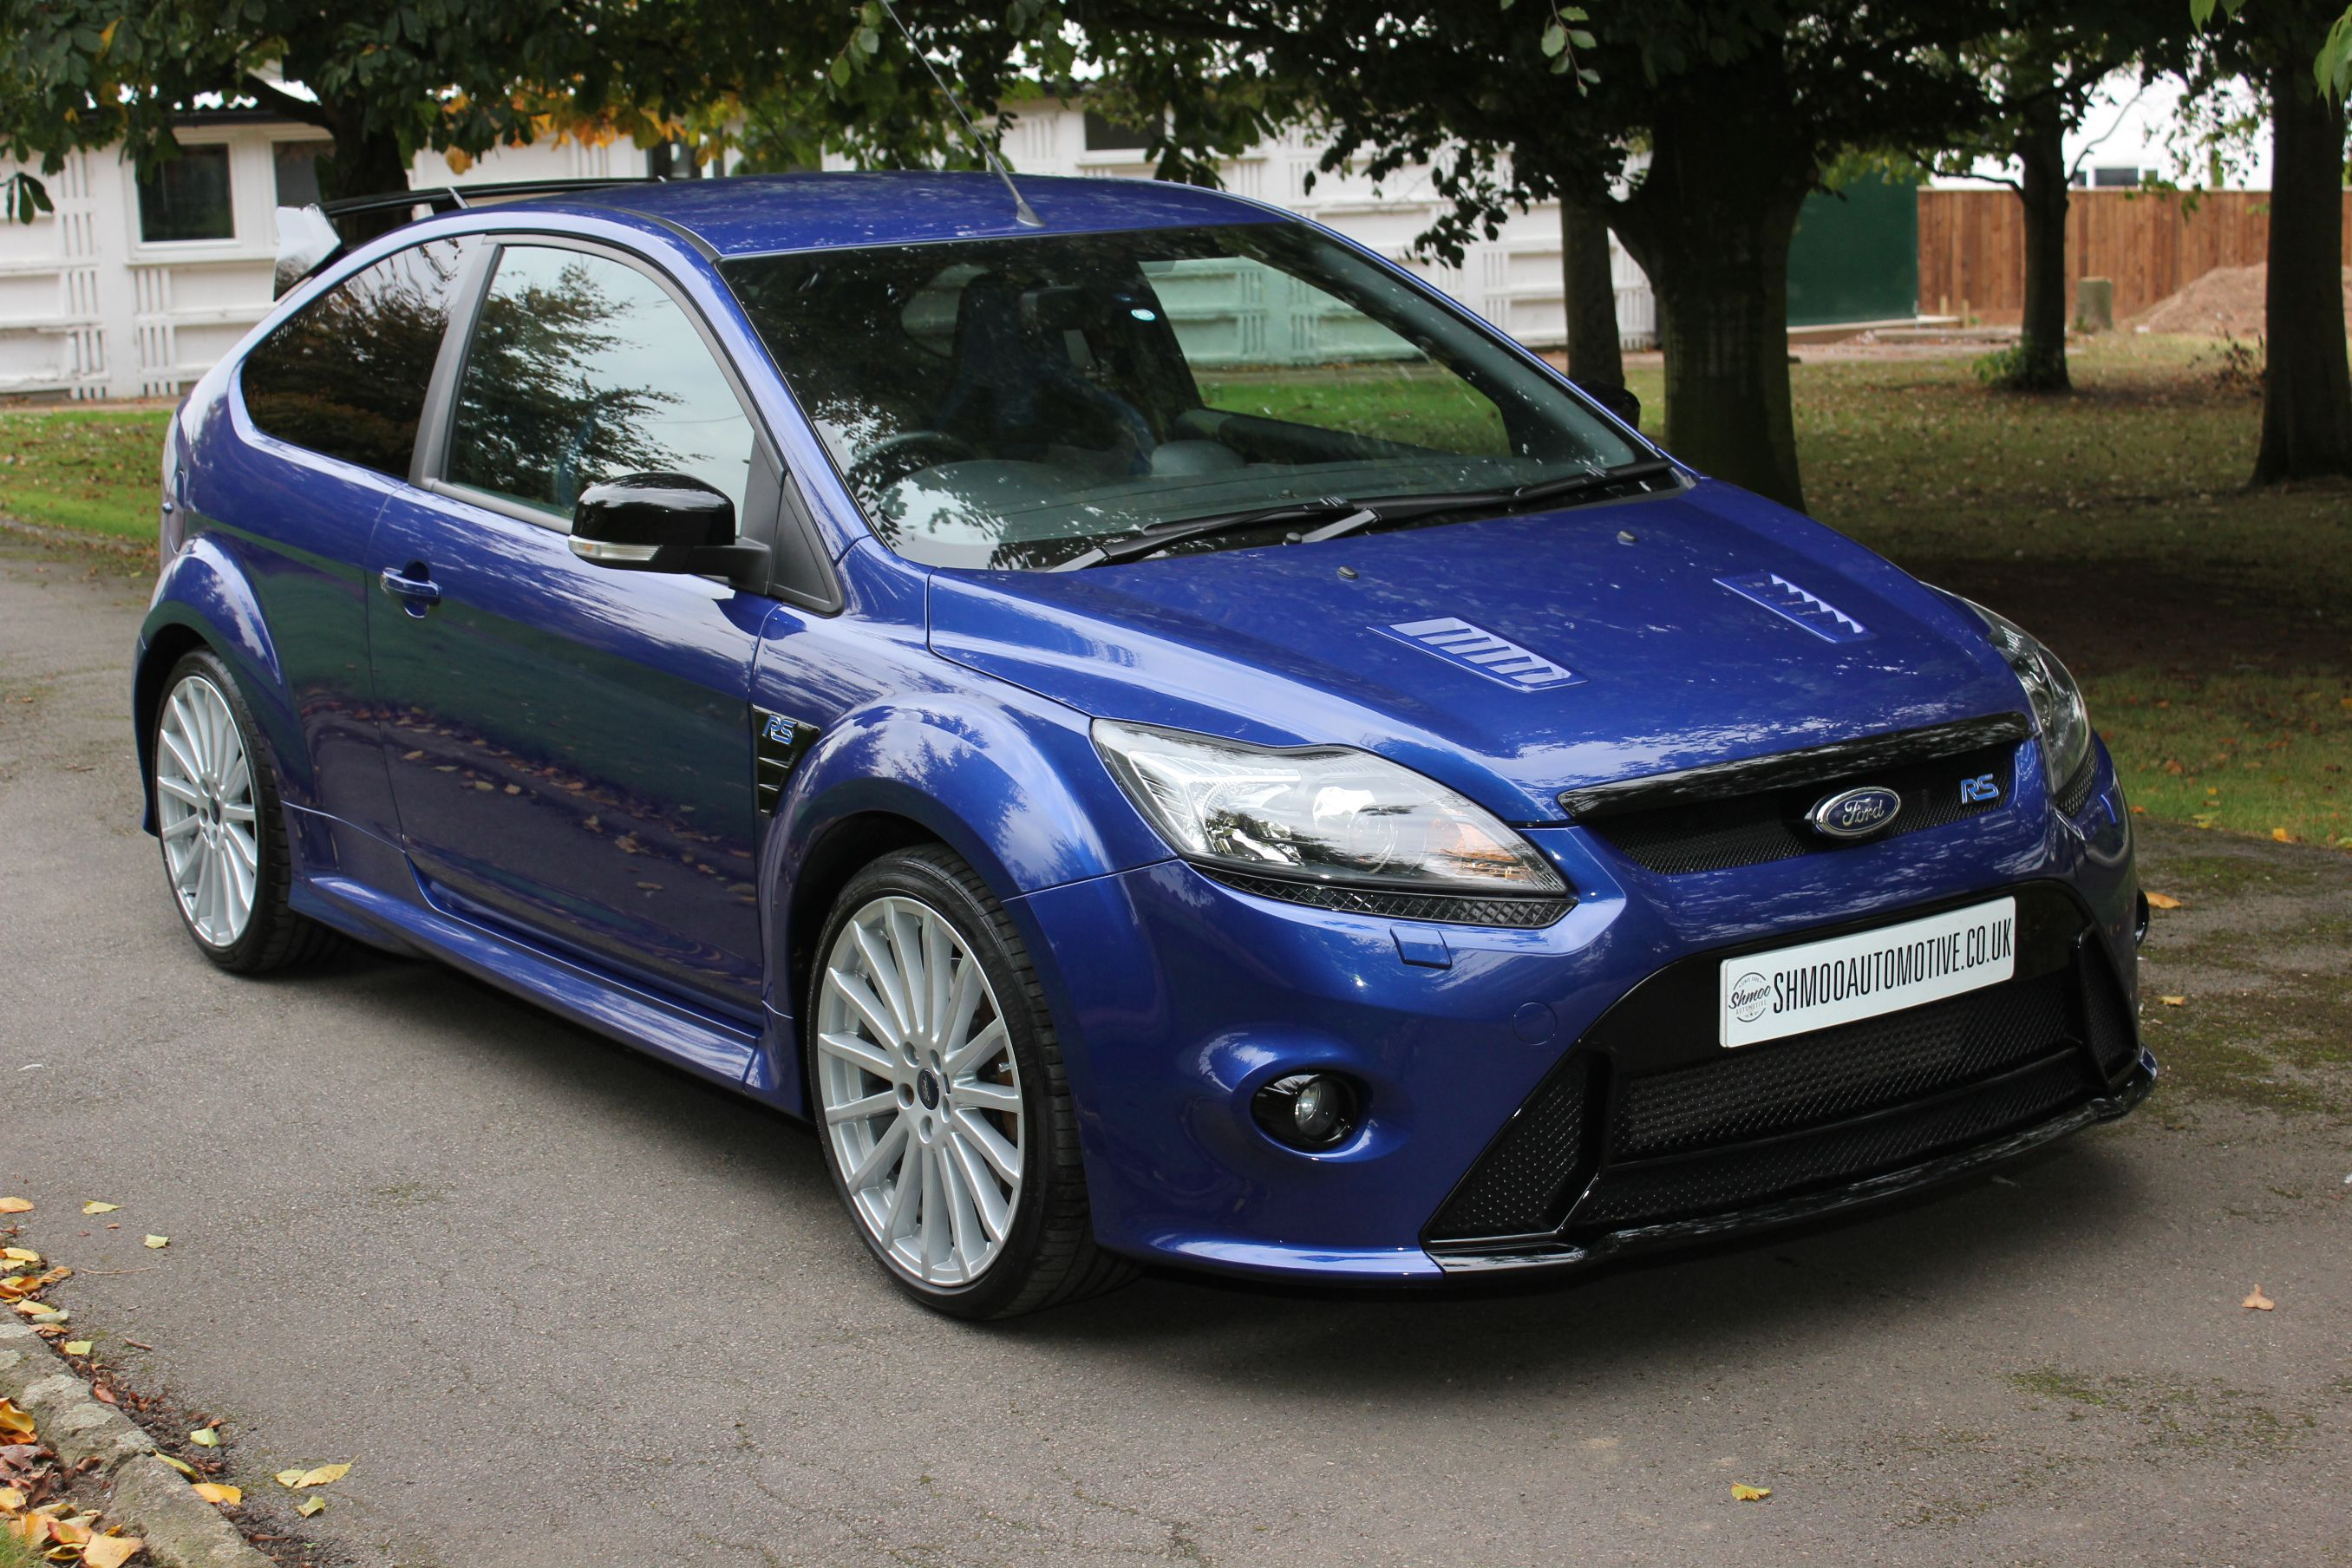 Ford Focus RS MK2 - Stunning 1 owner car with 15,000 miles FFSH. - Shmoo Automotive Shmoo Automotive